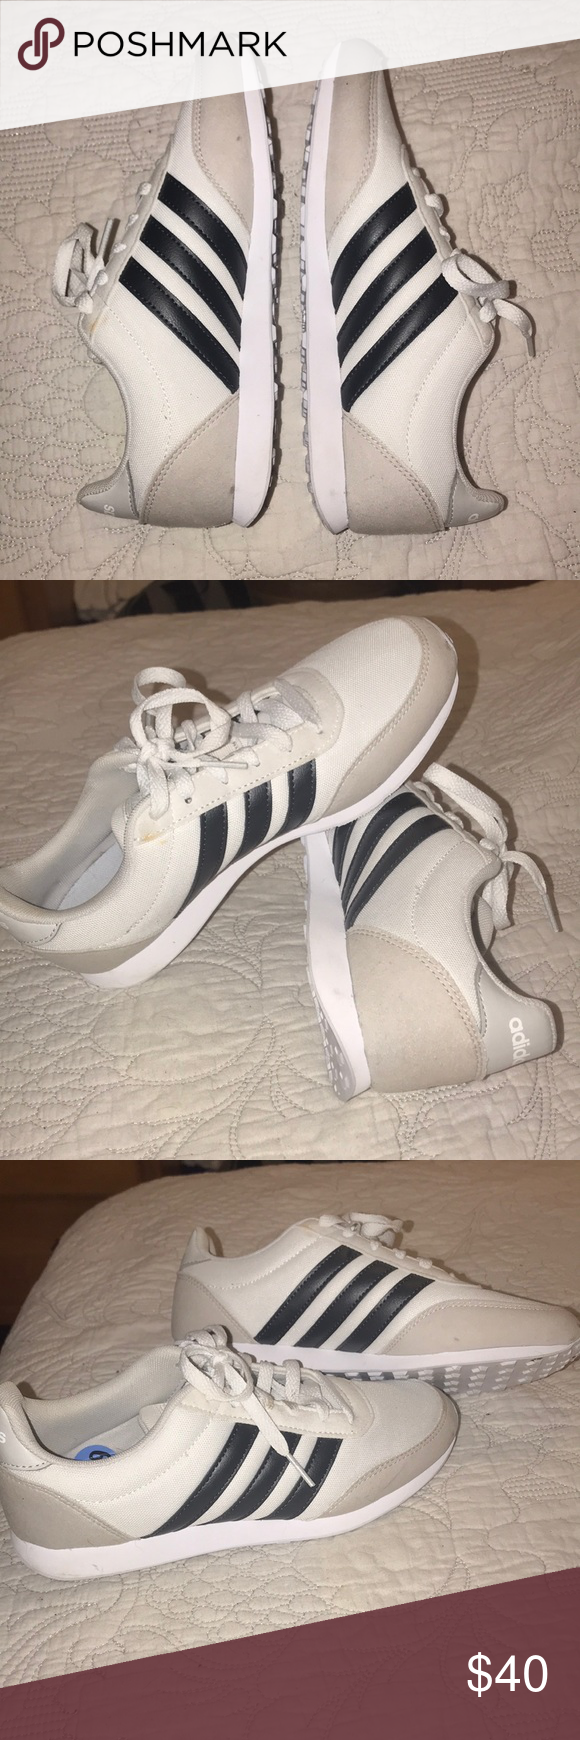 adidas sneakers Brand new from Marshalls! Never wear them 30642b208